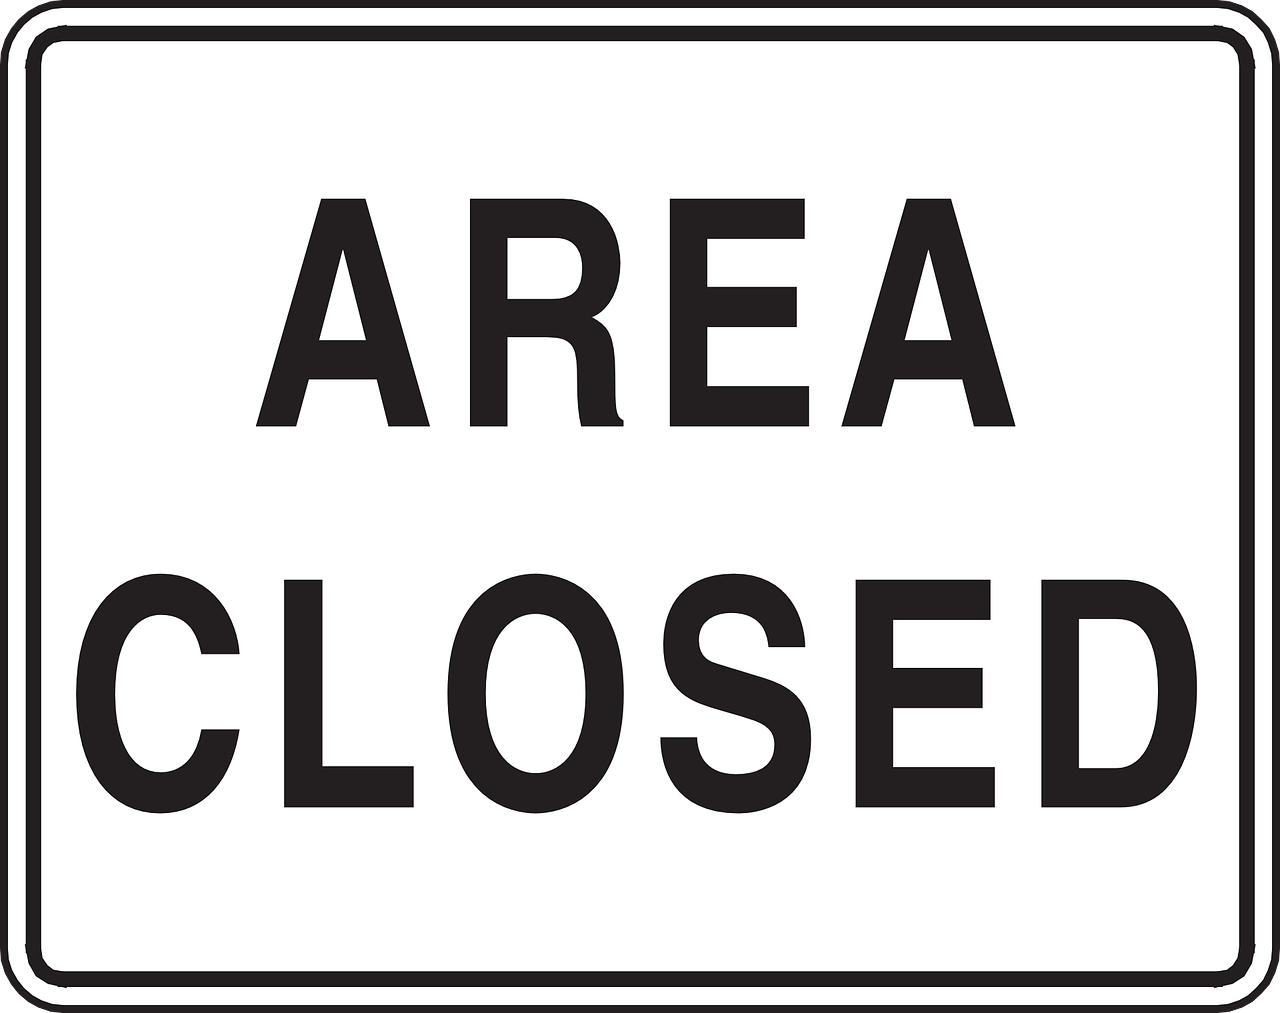 area closed sign free photo